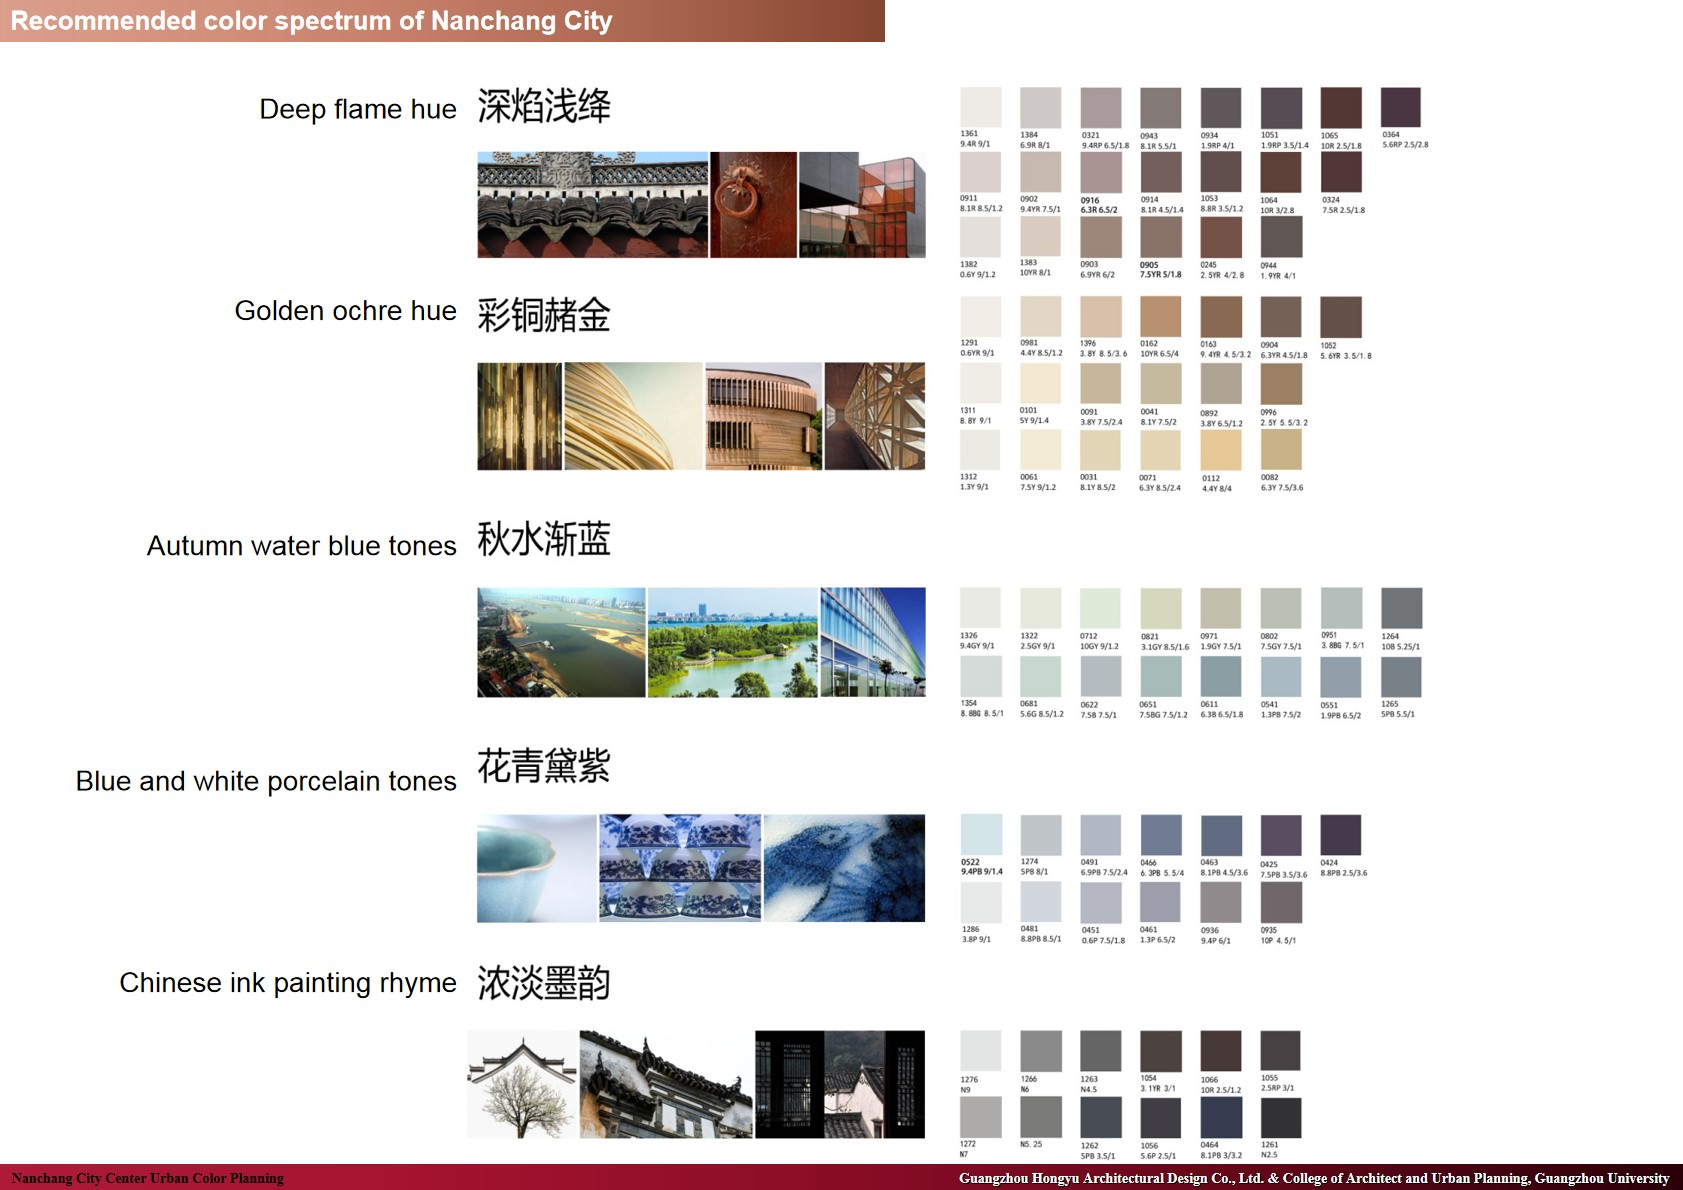 Recommended color spectrum of Nanchang City Guangzhou Hongyu Architectural Design Co., Ltd. & College of Architect and Urban Planning, Guangzhou University